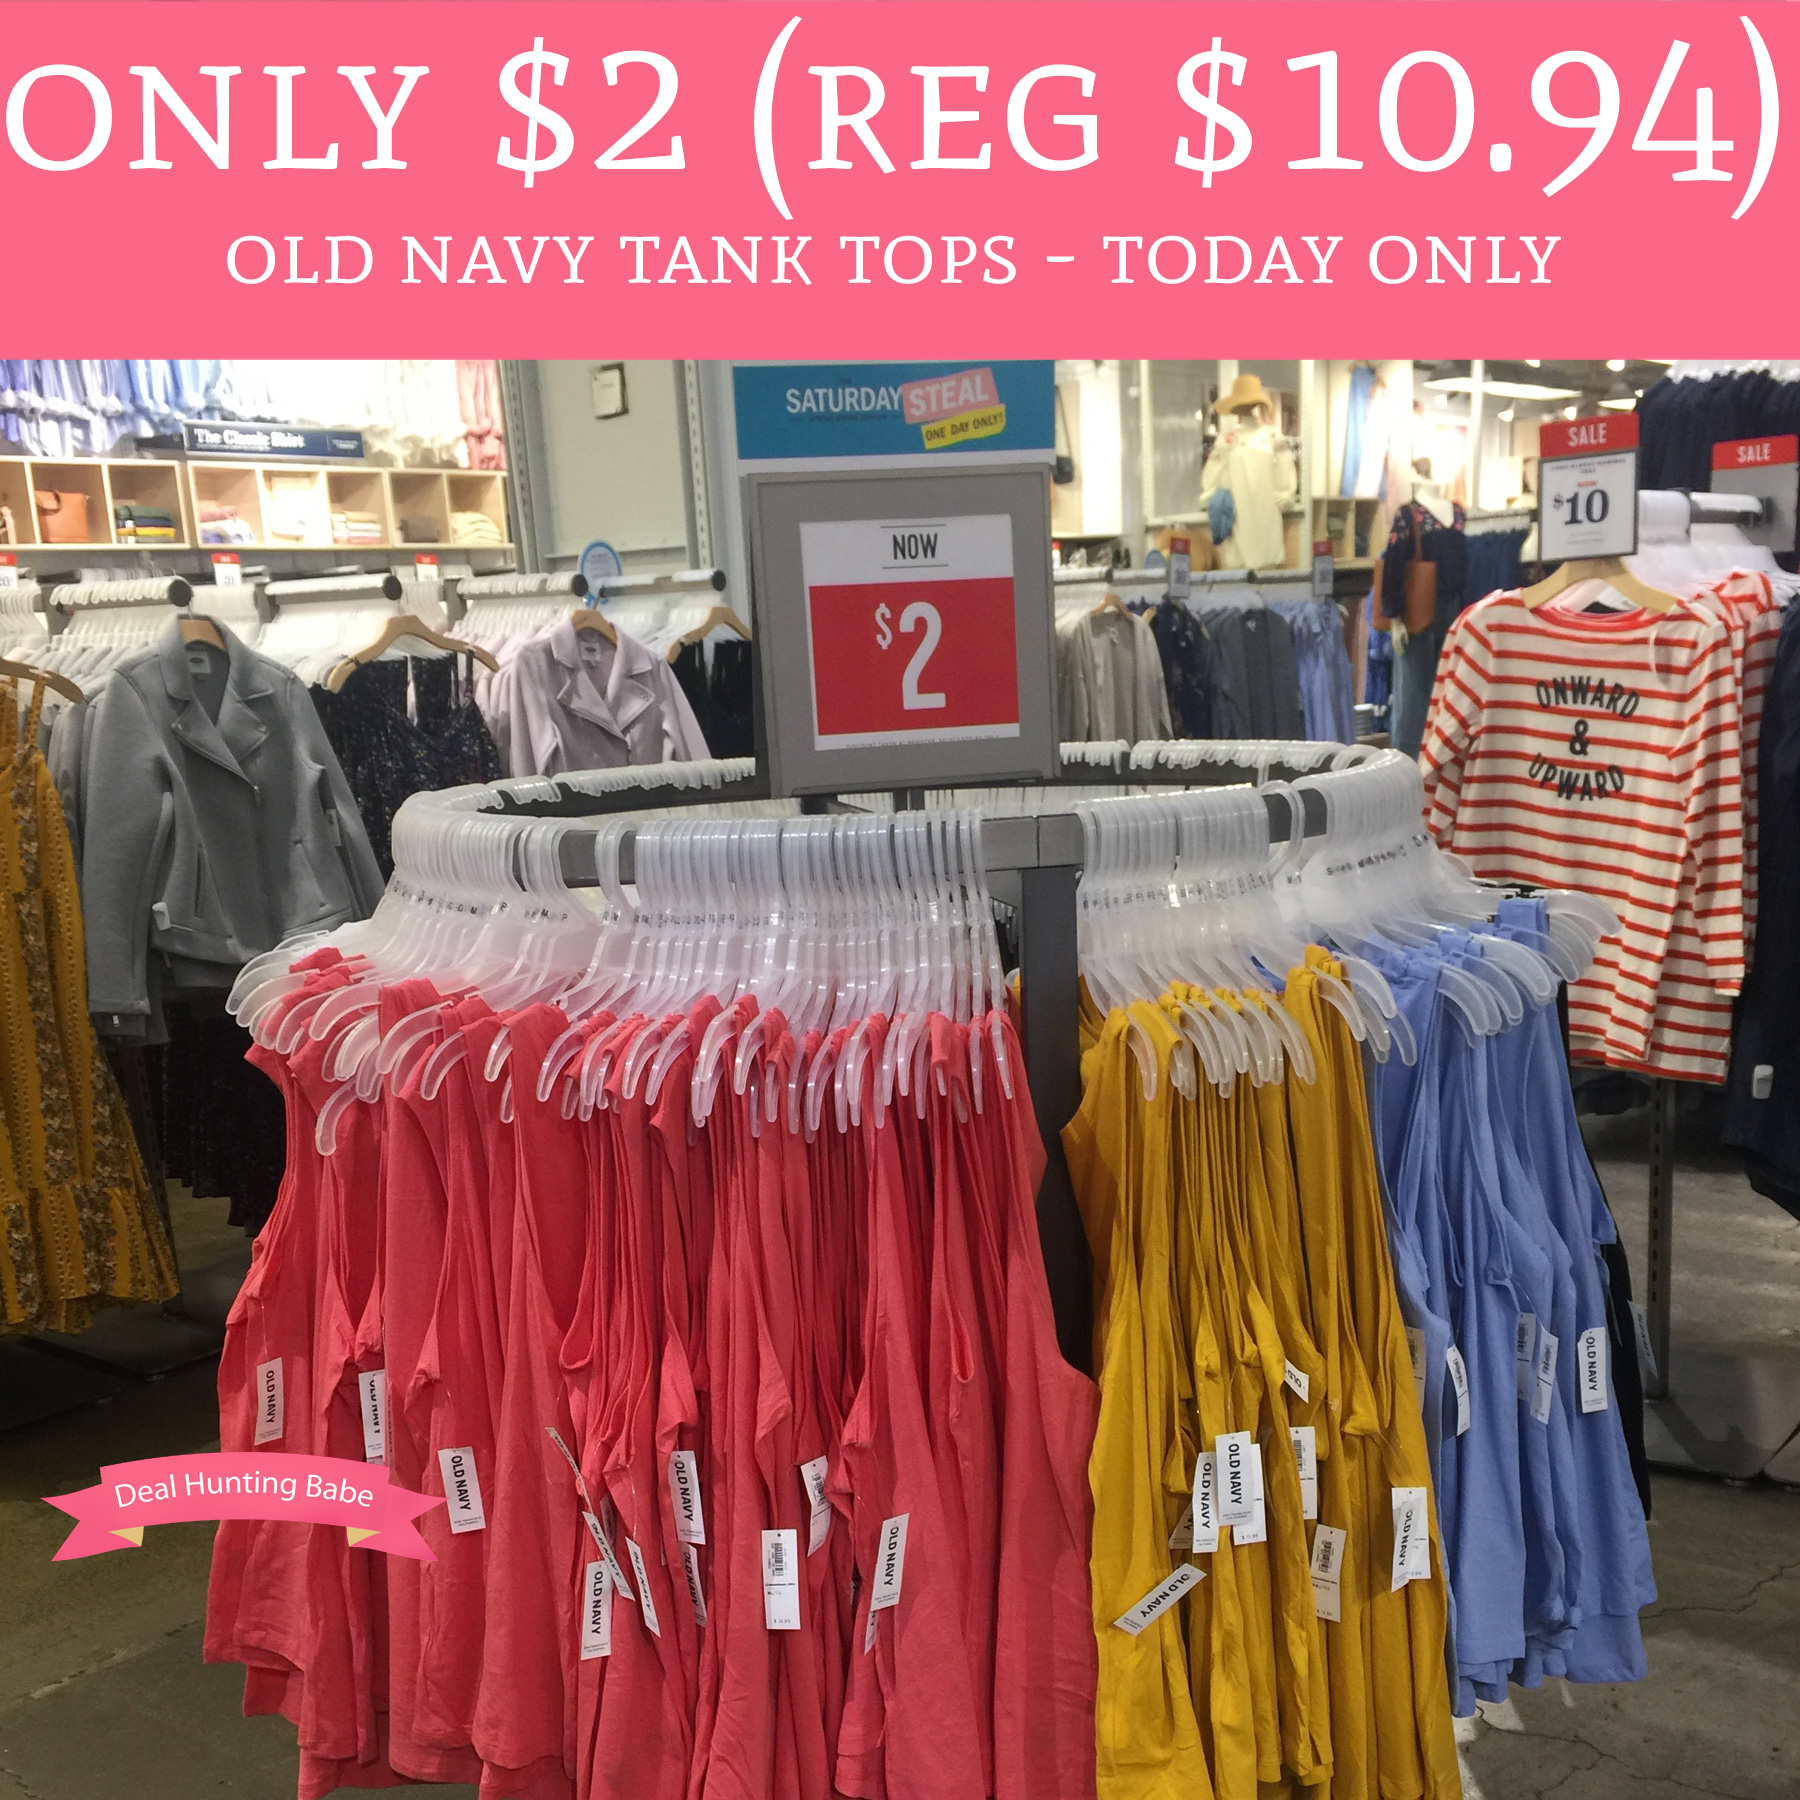 Today 4/21 Only! $2 Old Navy Tank Tops - In Store & Online - Deal ...